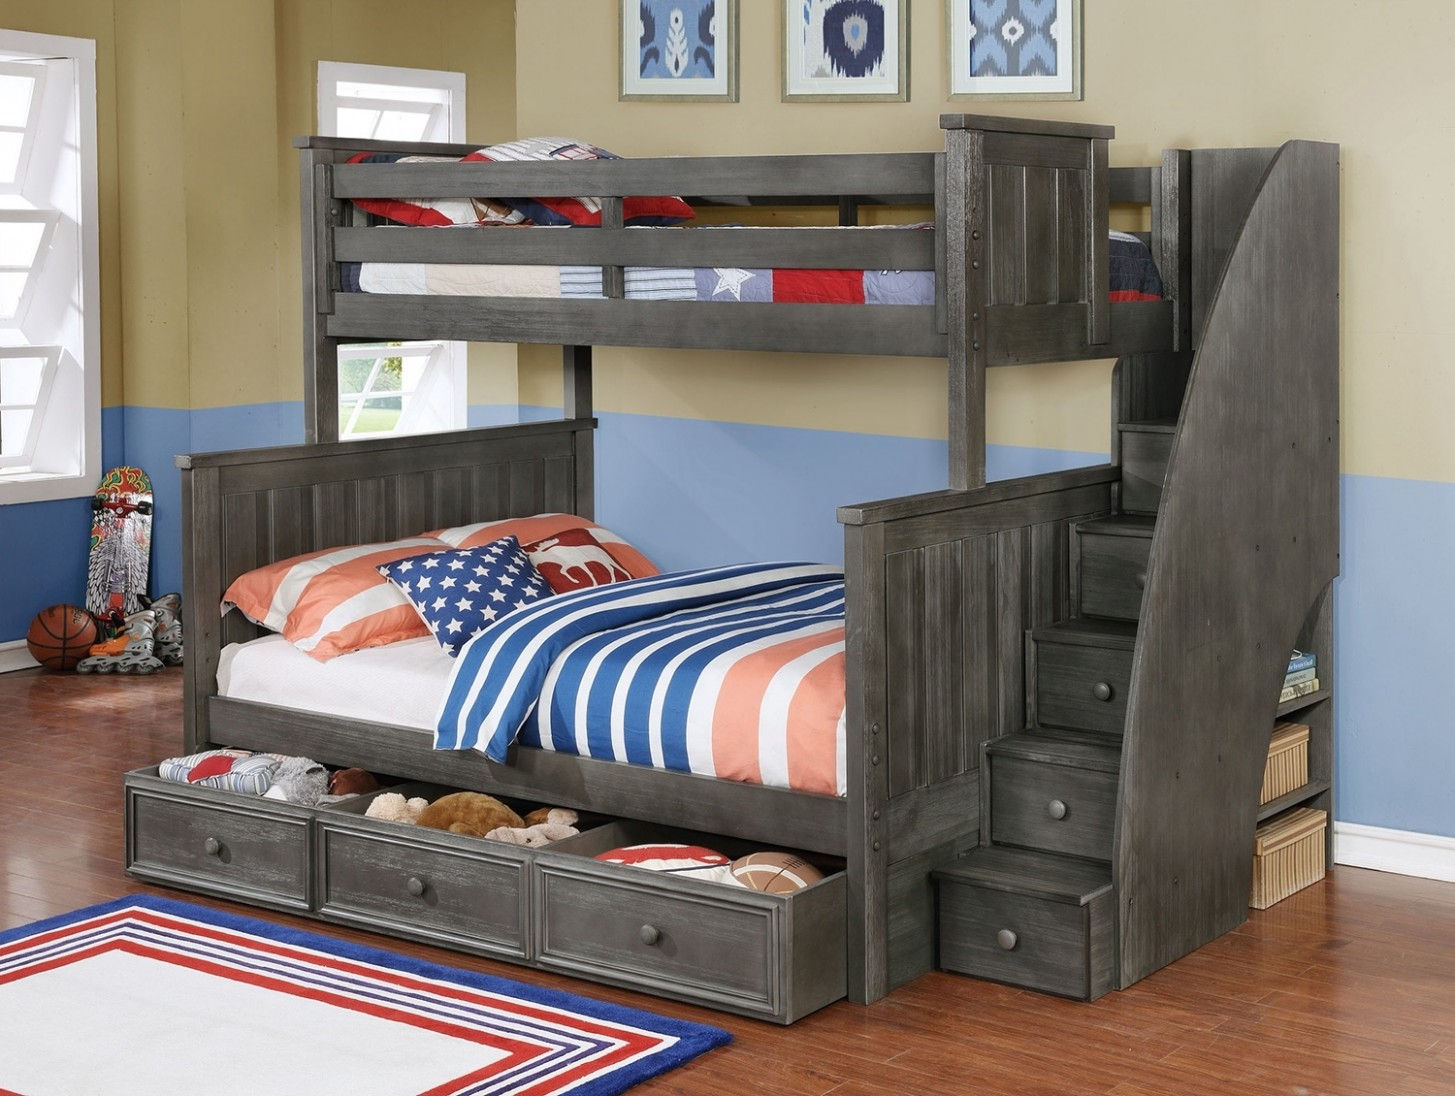 Picture of: Kids Bunk Beds with Storage Color